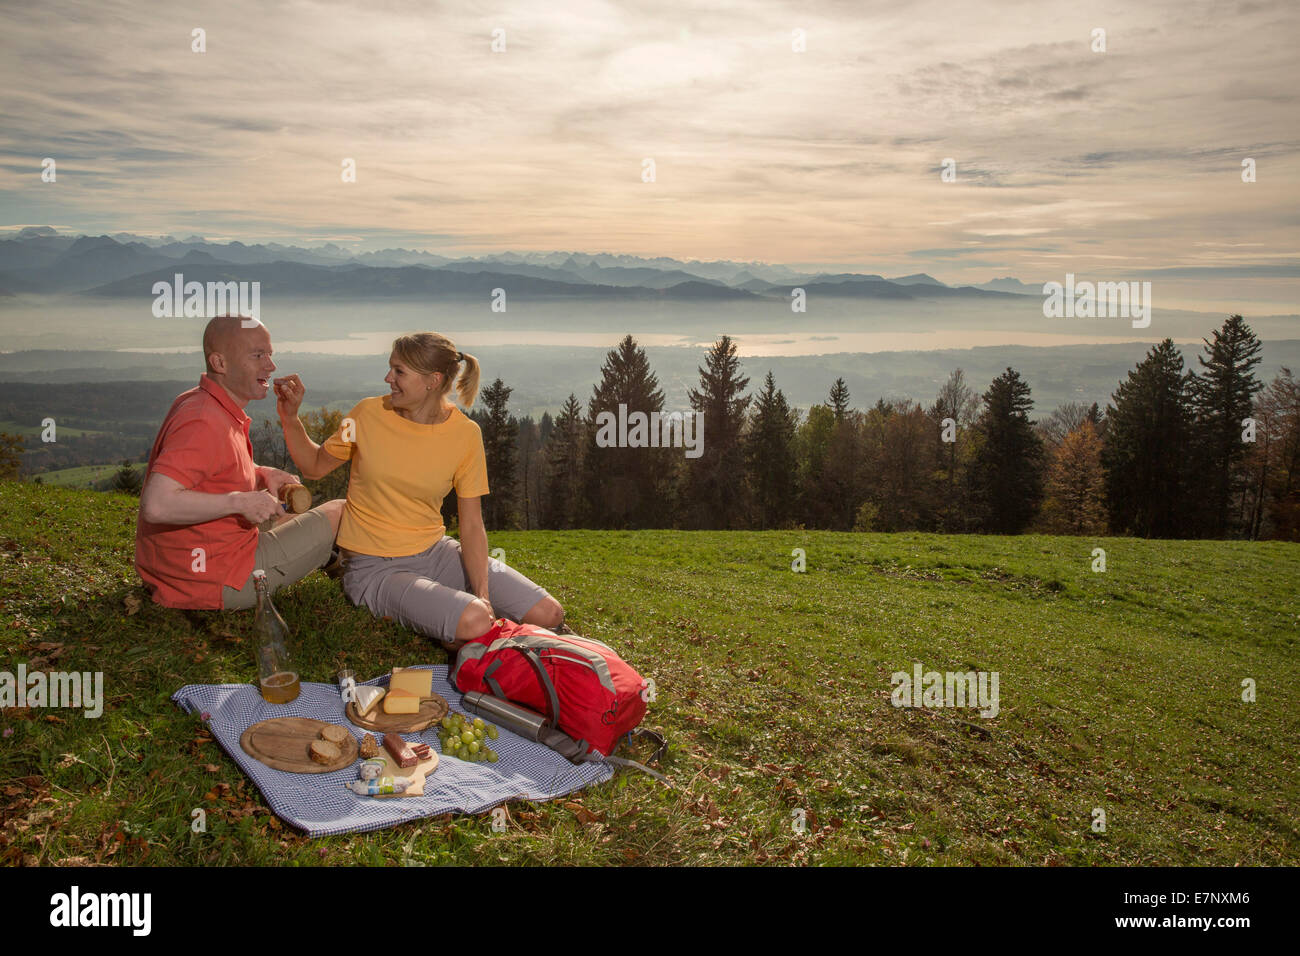 Picnic, Bachtel, Zurich lake, view, Alpine chain, canton Zurich, mountain, mountains, food, eatings, sport, spare - Stock Image